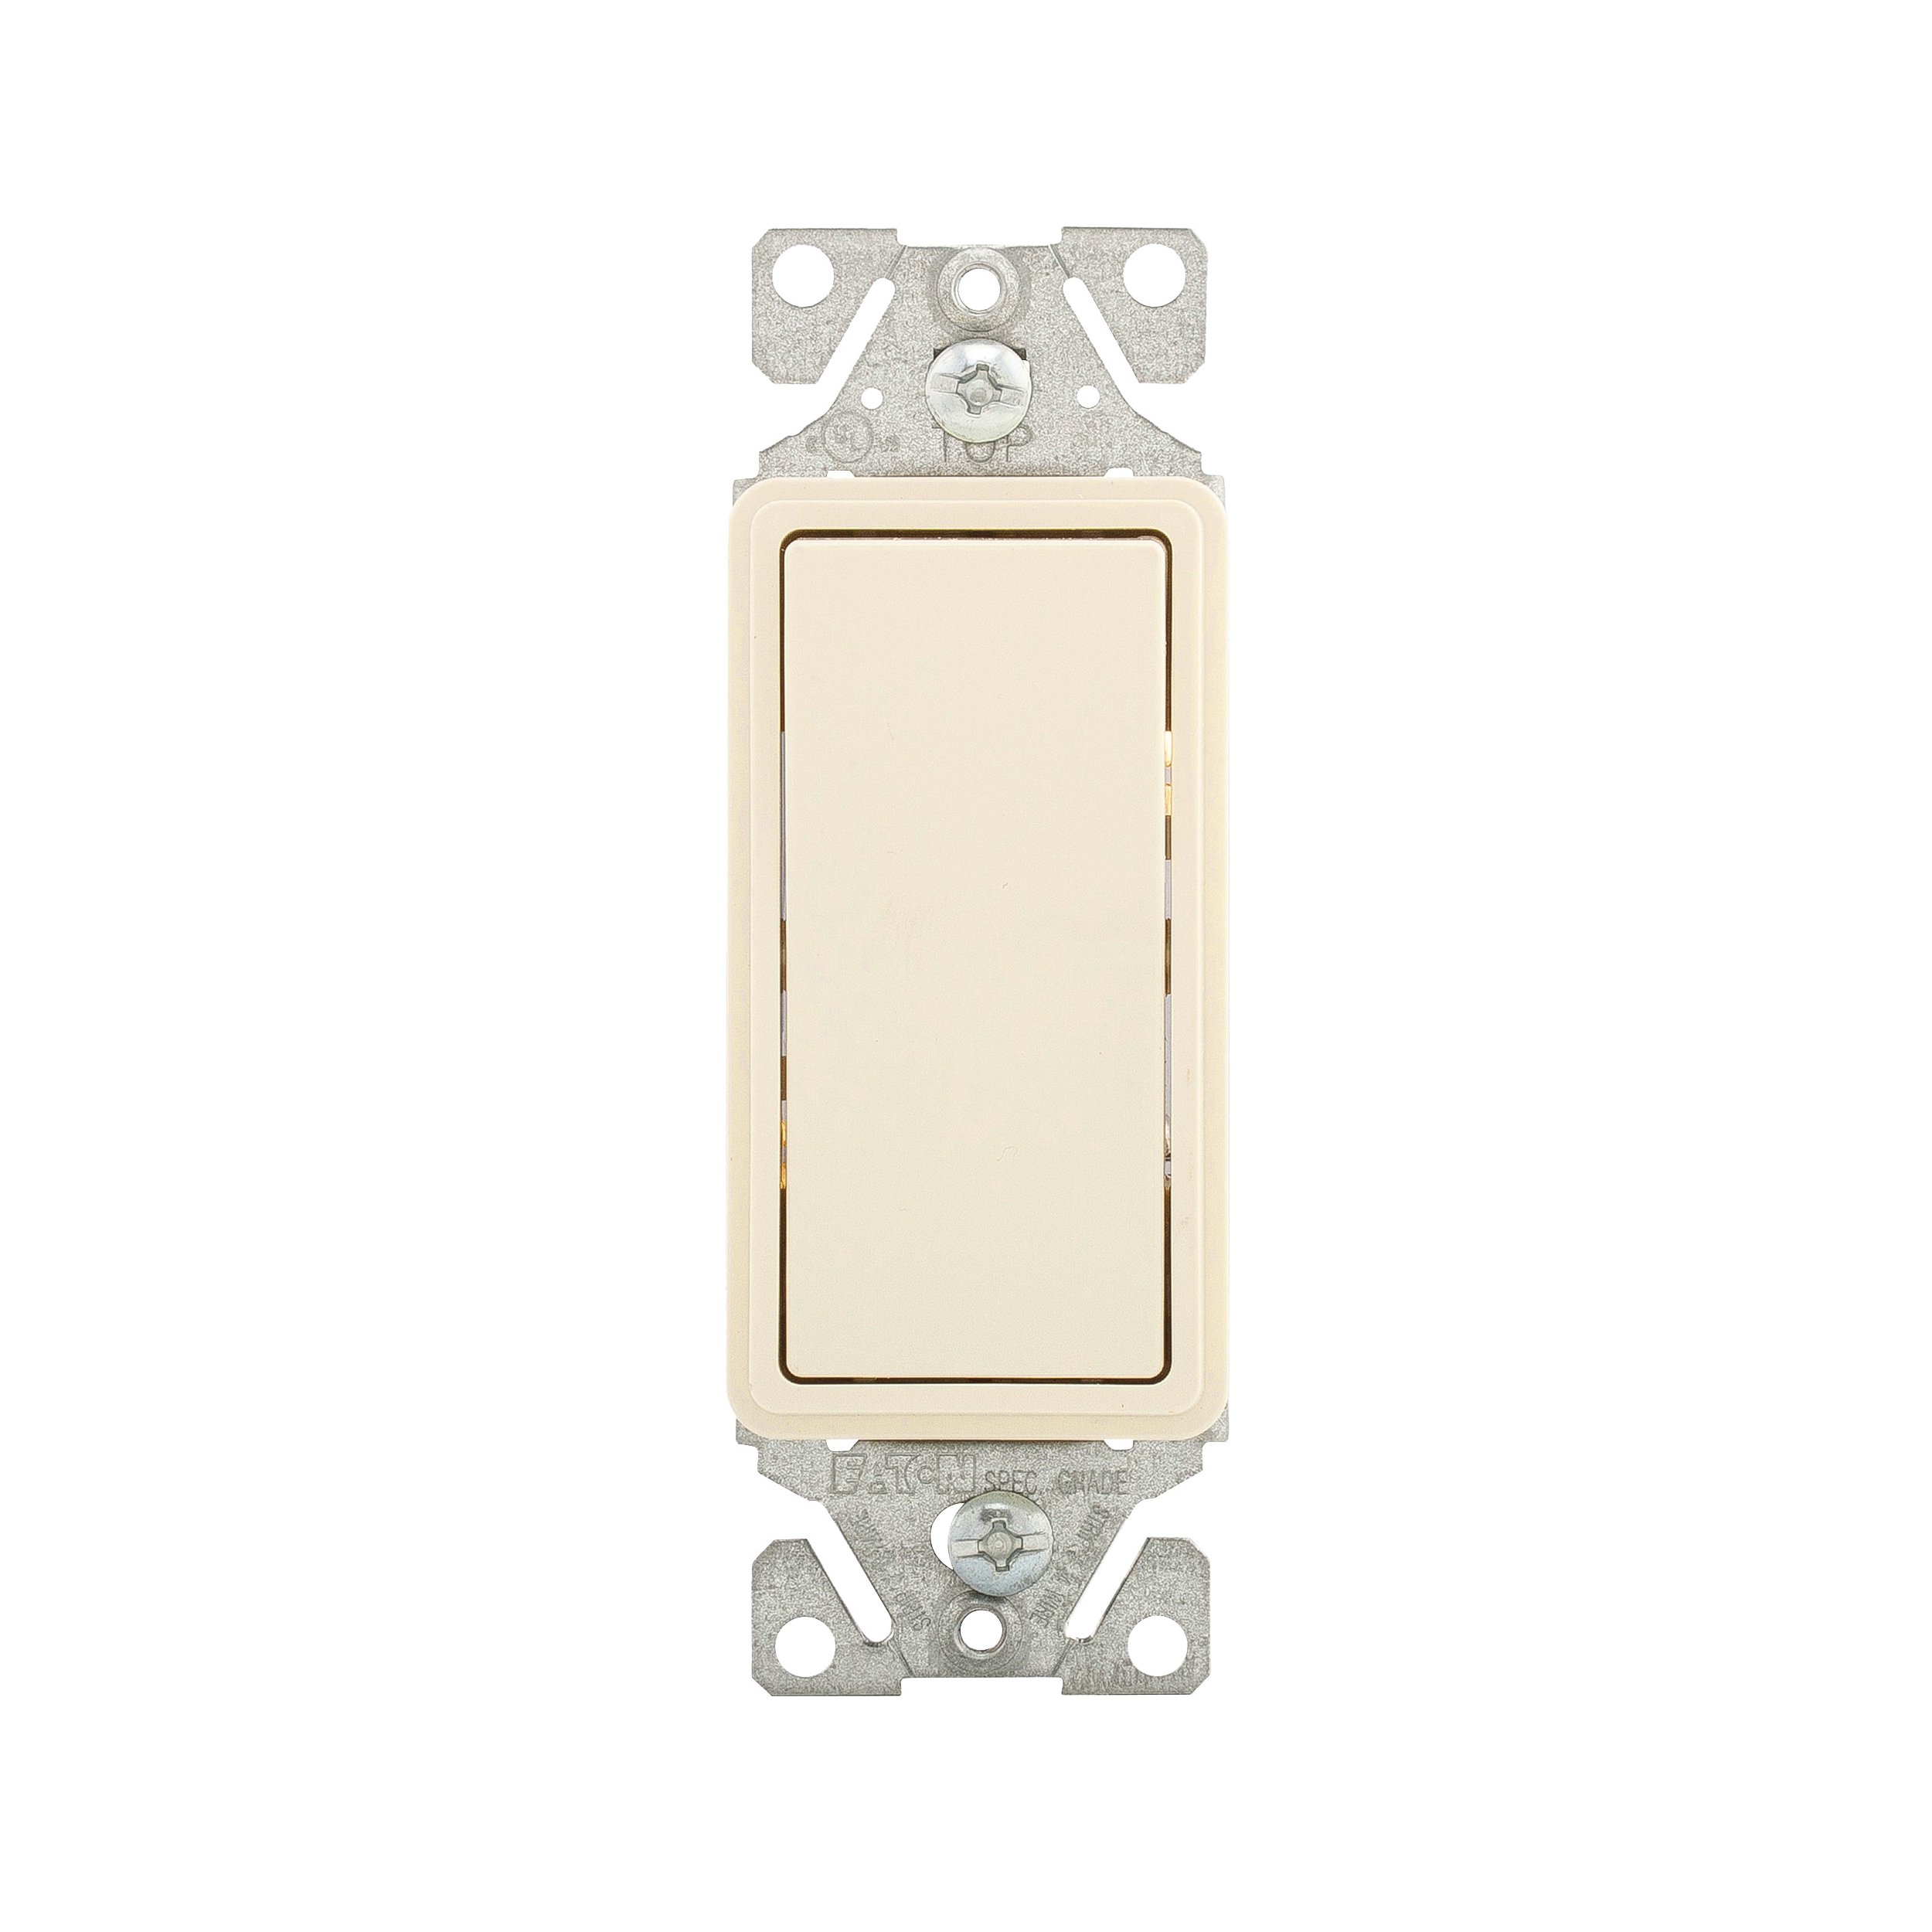 Picture of Eaton Wiring Devices 7500 Series 7503LA-BOX Rocker Switch, 15 A, 120/277 V, 3-Way, Lead Wire Terminal, Light Almond